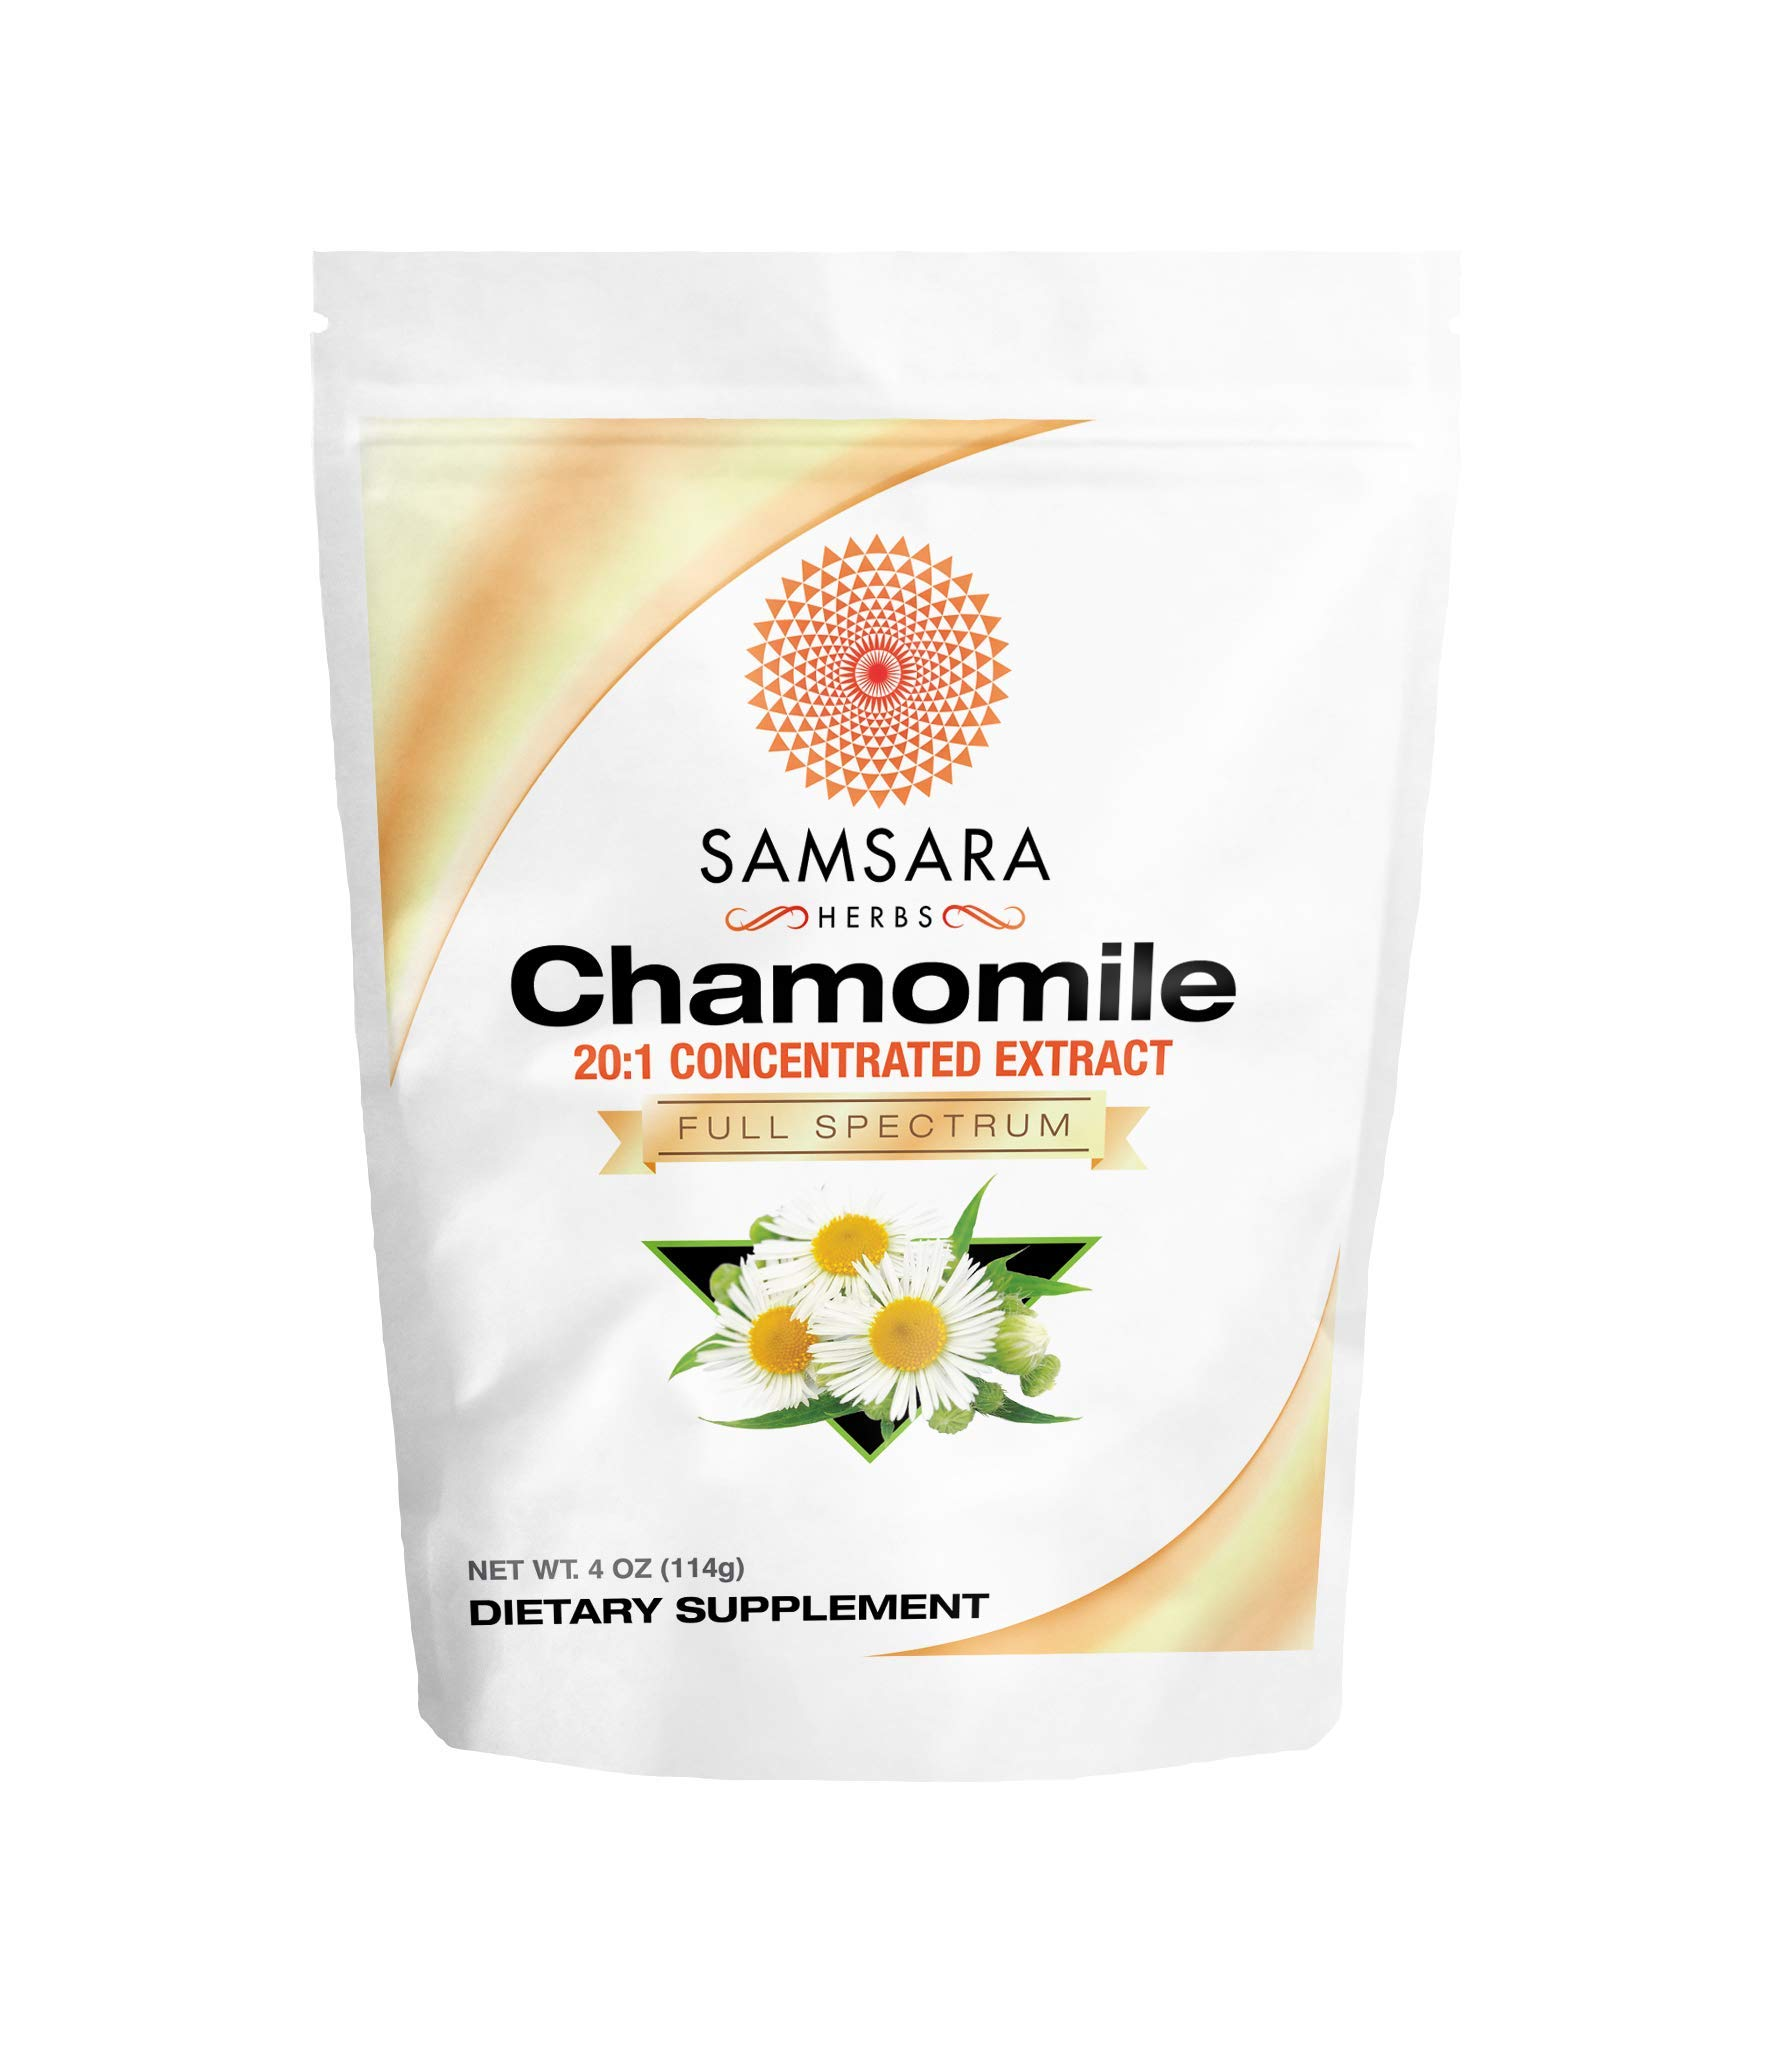 Samsara Herbs Chamomile Extract Powder - 20:1 Concentrated Extract - (4oz / 114g) Non - GMO, Potent, Highly Concentrated